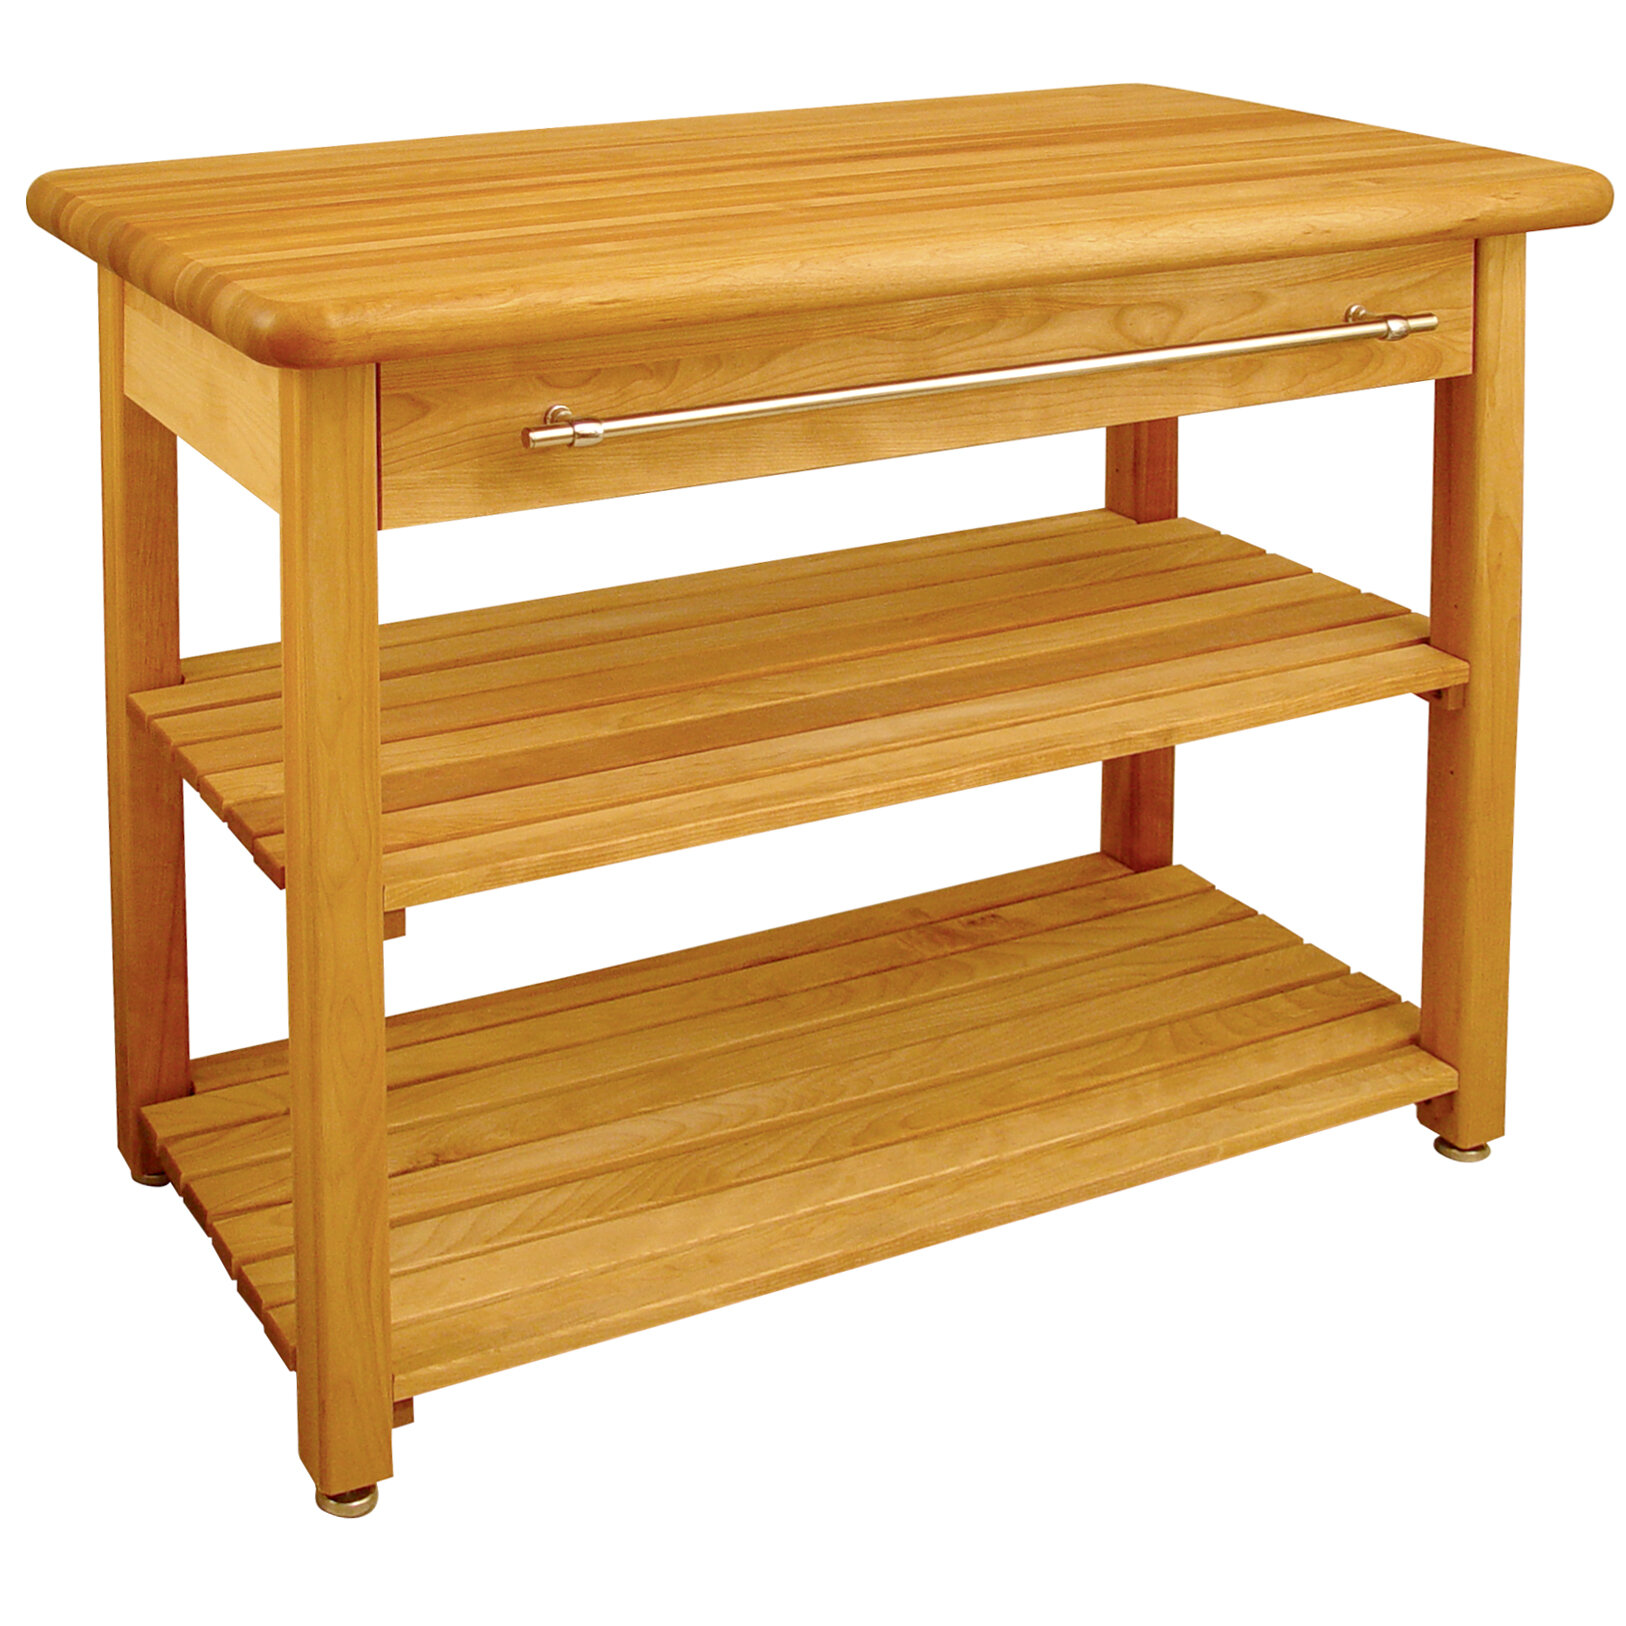 French Country Kitchen Prep Table catskill craftsmen french country prep table & reviews | wayfair